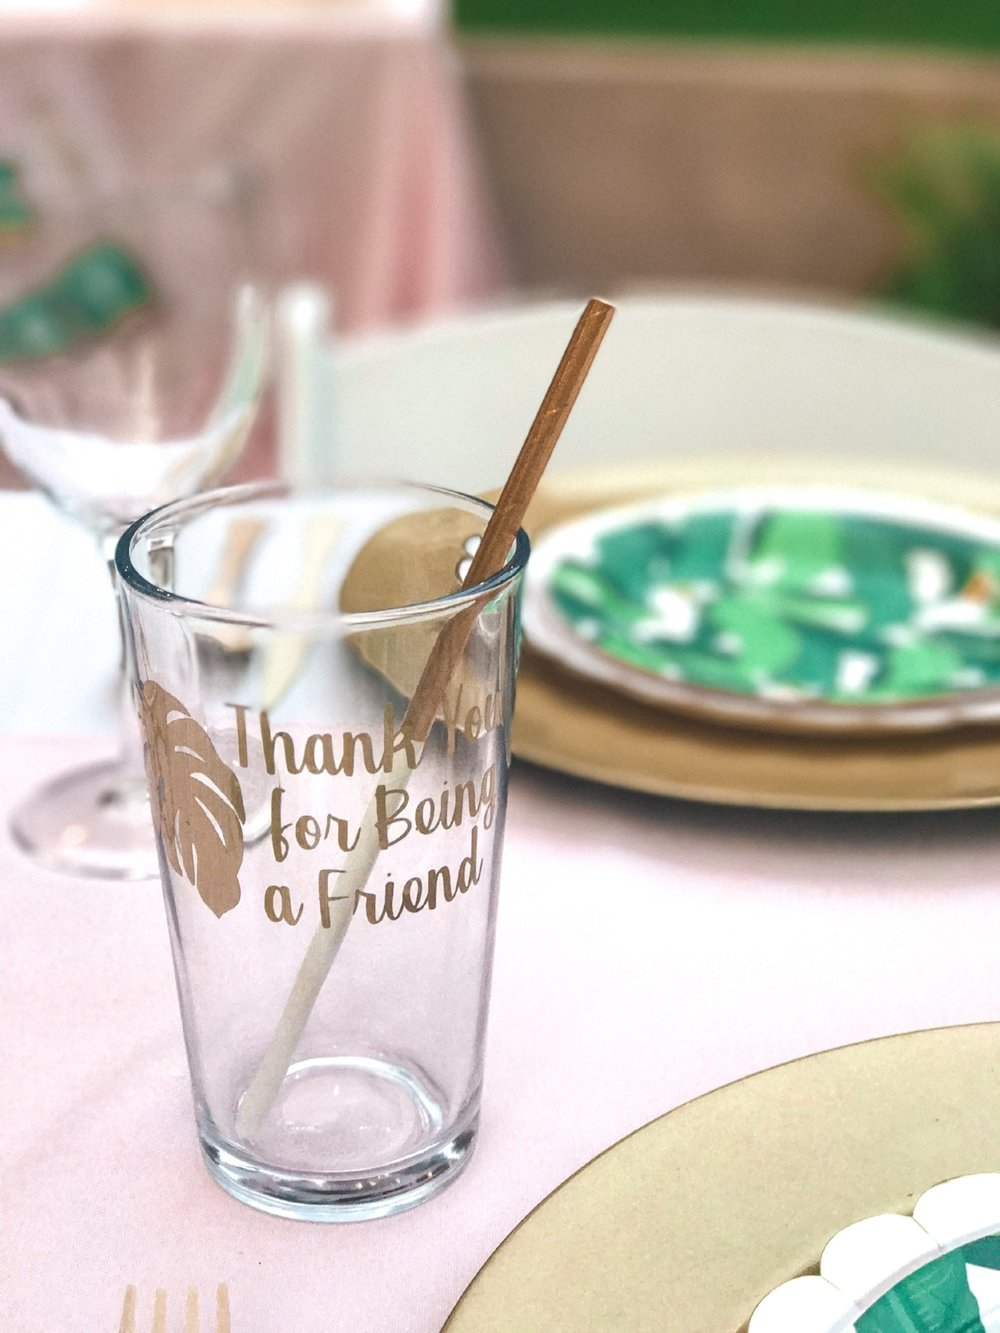 I designed this print, used my Cricut to cut it out of vinyl, and applied it to dollar store drinking glasses. These doubled as favors for my guests.